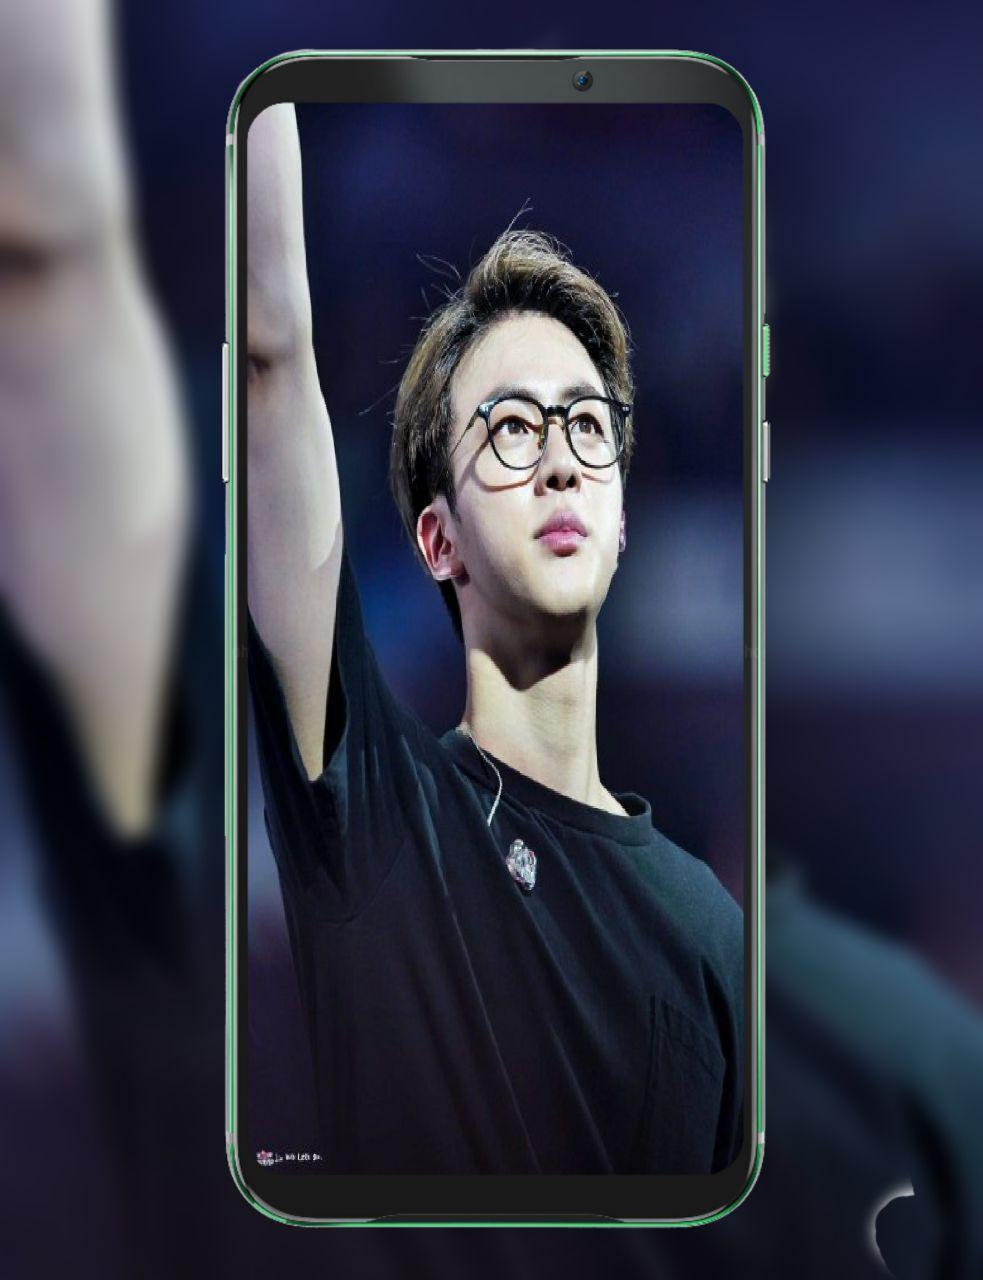 Jin Bts Wallpaper Hd For Android Apk Download